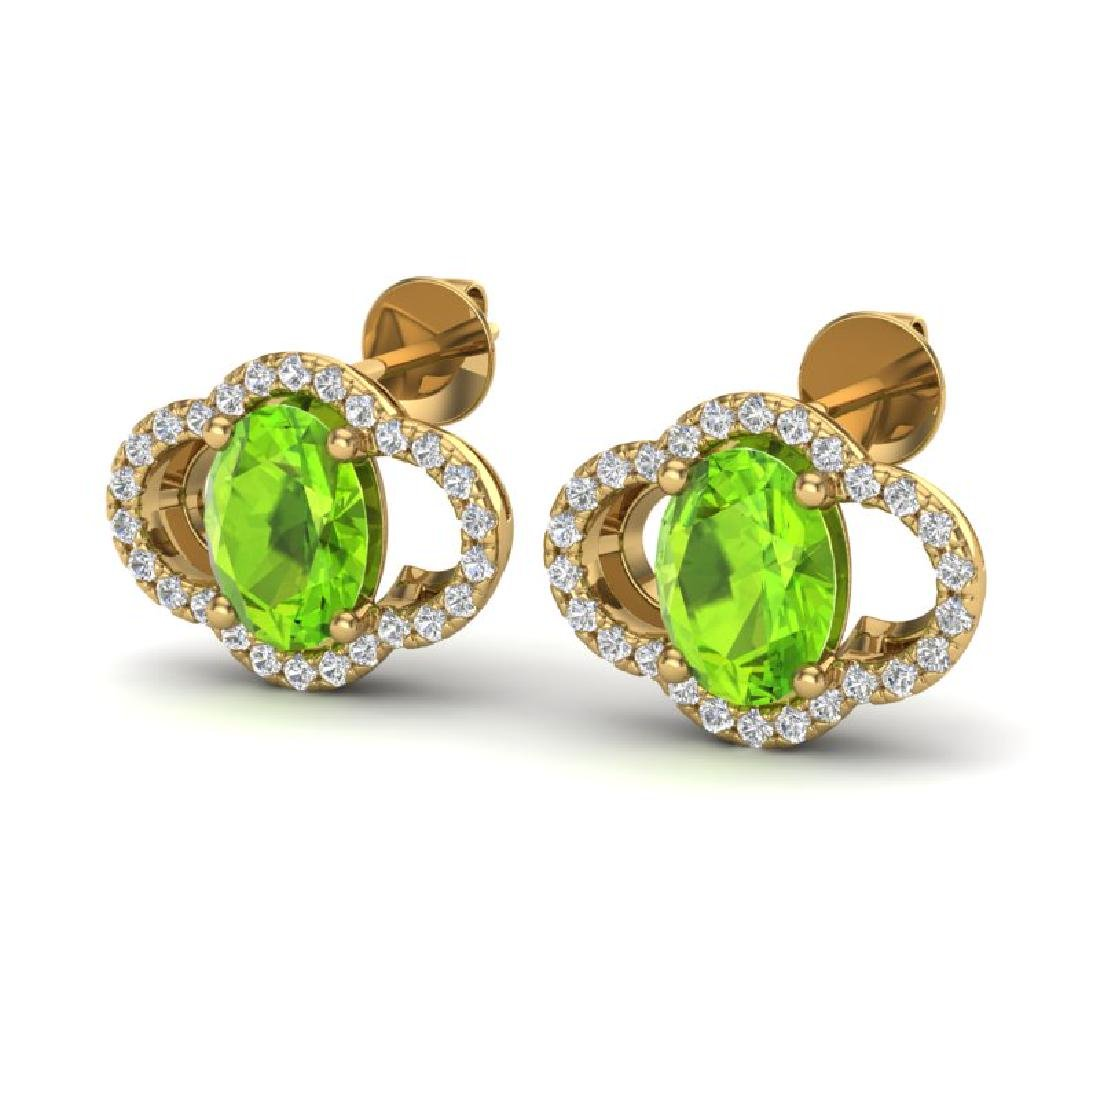 3.50 CTW Peridot & Micro Pave VS/SI Diamond Earrings